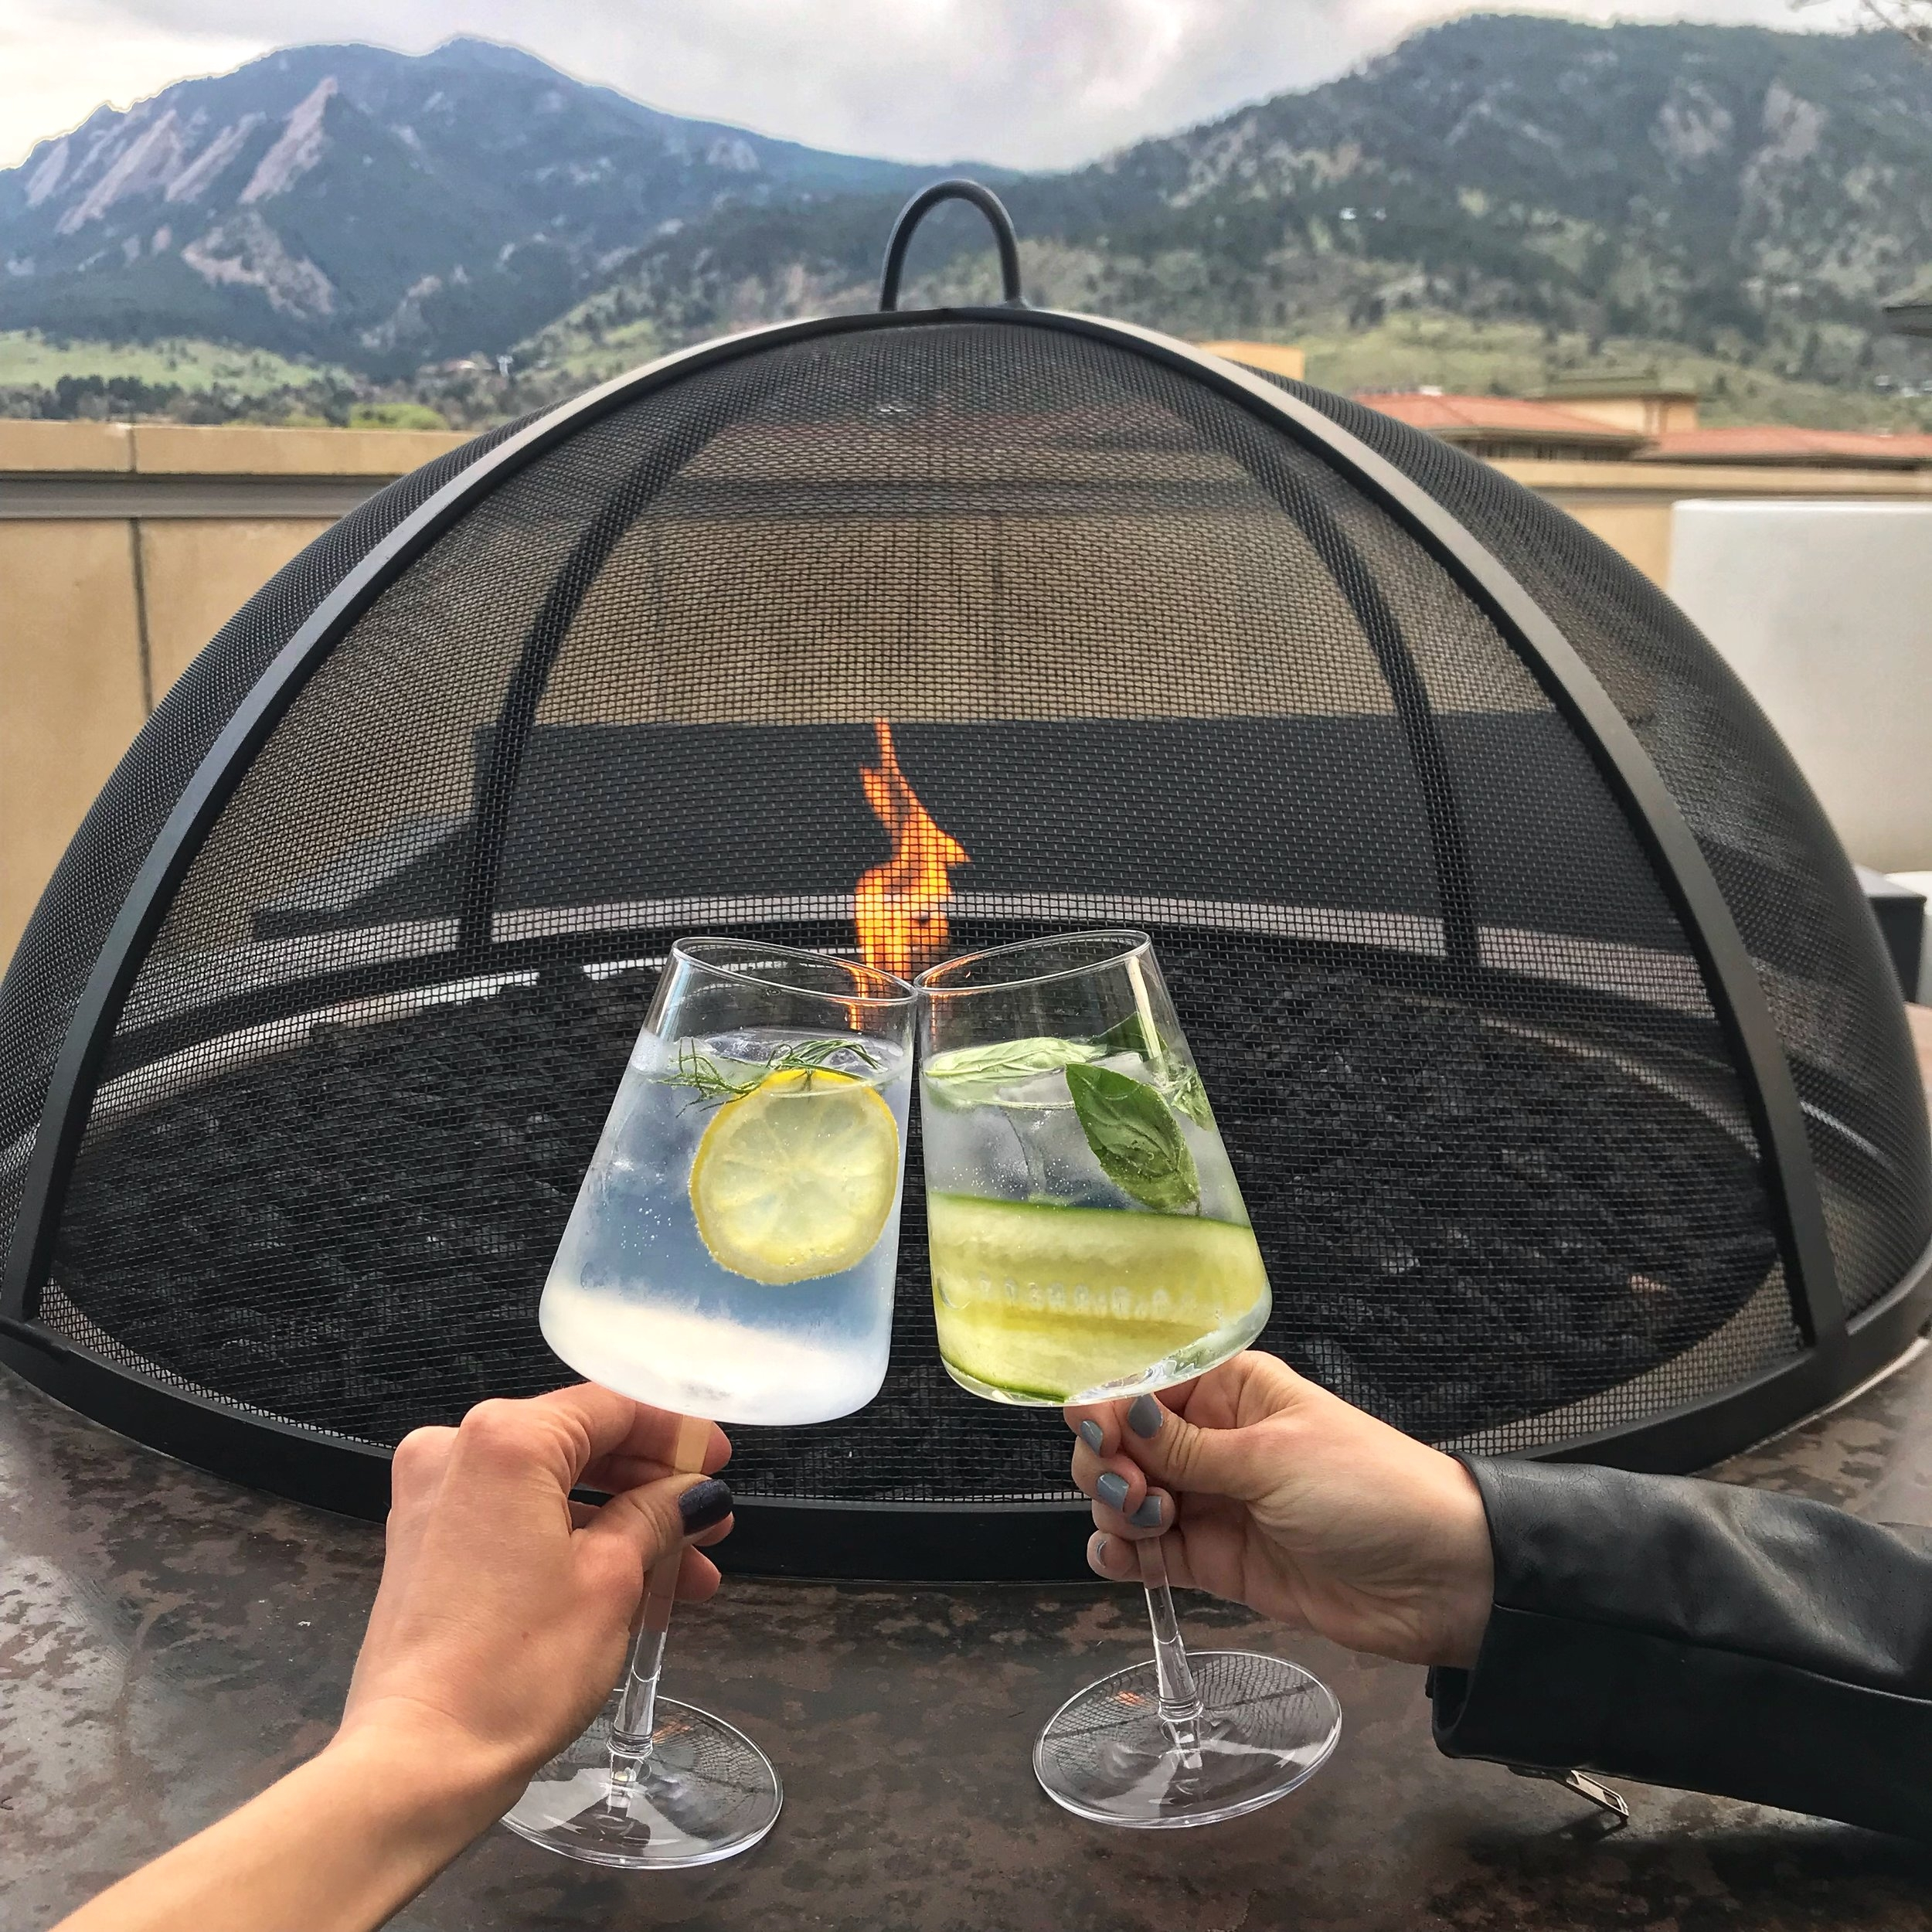 Why we love it: great tapas, fancy cocktails, excellent service  Corrida is a new Spanish style steakhouse in Boulder. They have arguably the best rooftop patio we've ever been to. With sprawling mountain views, fun lounge seats, fire pits, and indoor/outdoor bar seating, they have created something really special. Here we have the gin and tonics, which are prepared for you table-side. We each ordered a different type - they have 5 different options - and both were super refreshing. Without getting into it too much, the food is excellent (see previous blog post on our full review). It is definitely more of an upscale dining spot, but rumor has it they will be rolling out a happy hour menu soon!